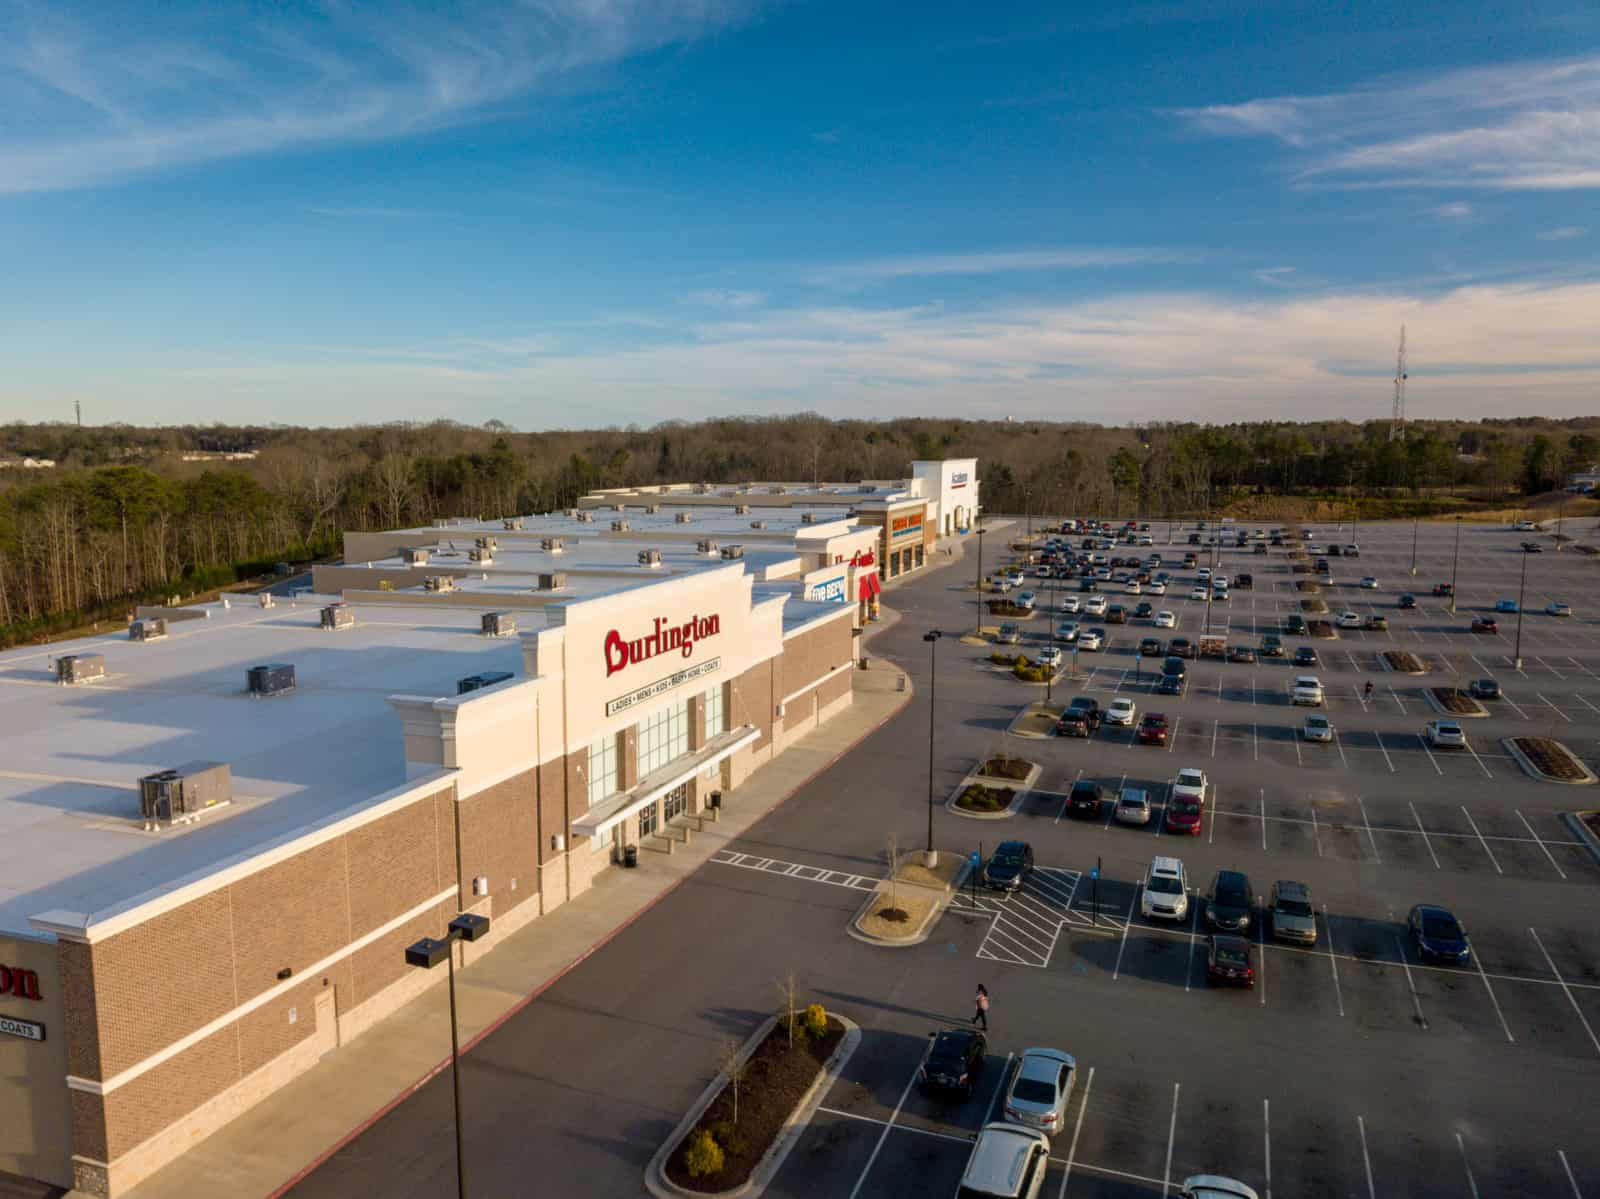 aerial drone photo of shopping center located in Georgia